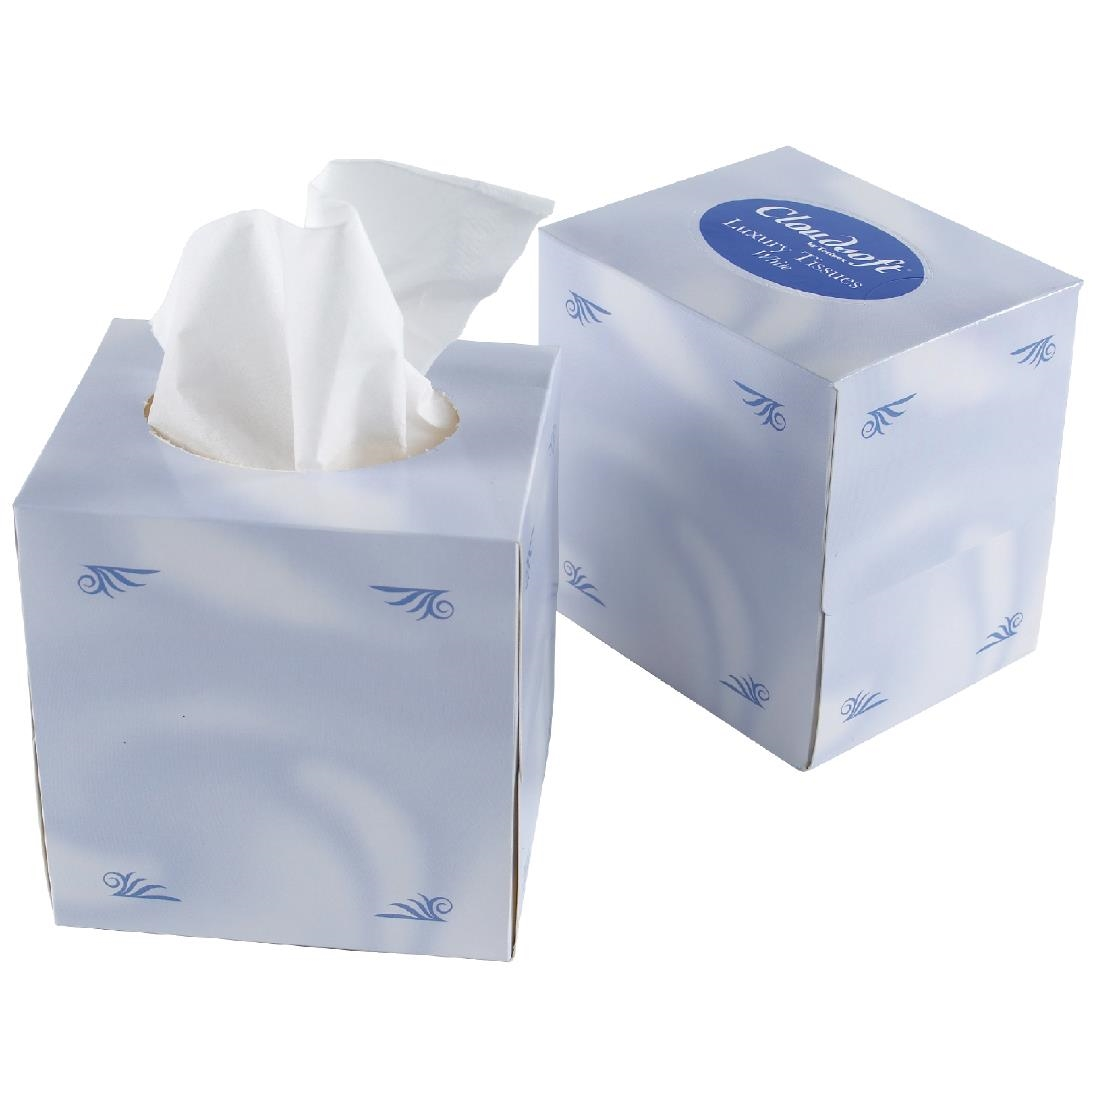 Image of Facial Tissues Cube (Pack of 24) Pack of 24